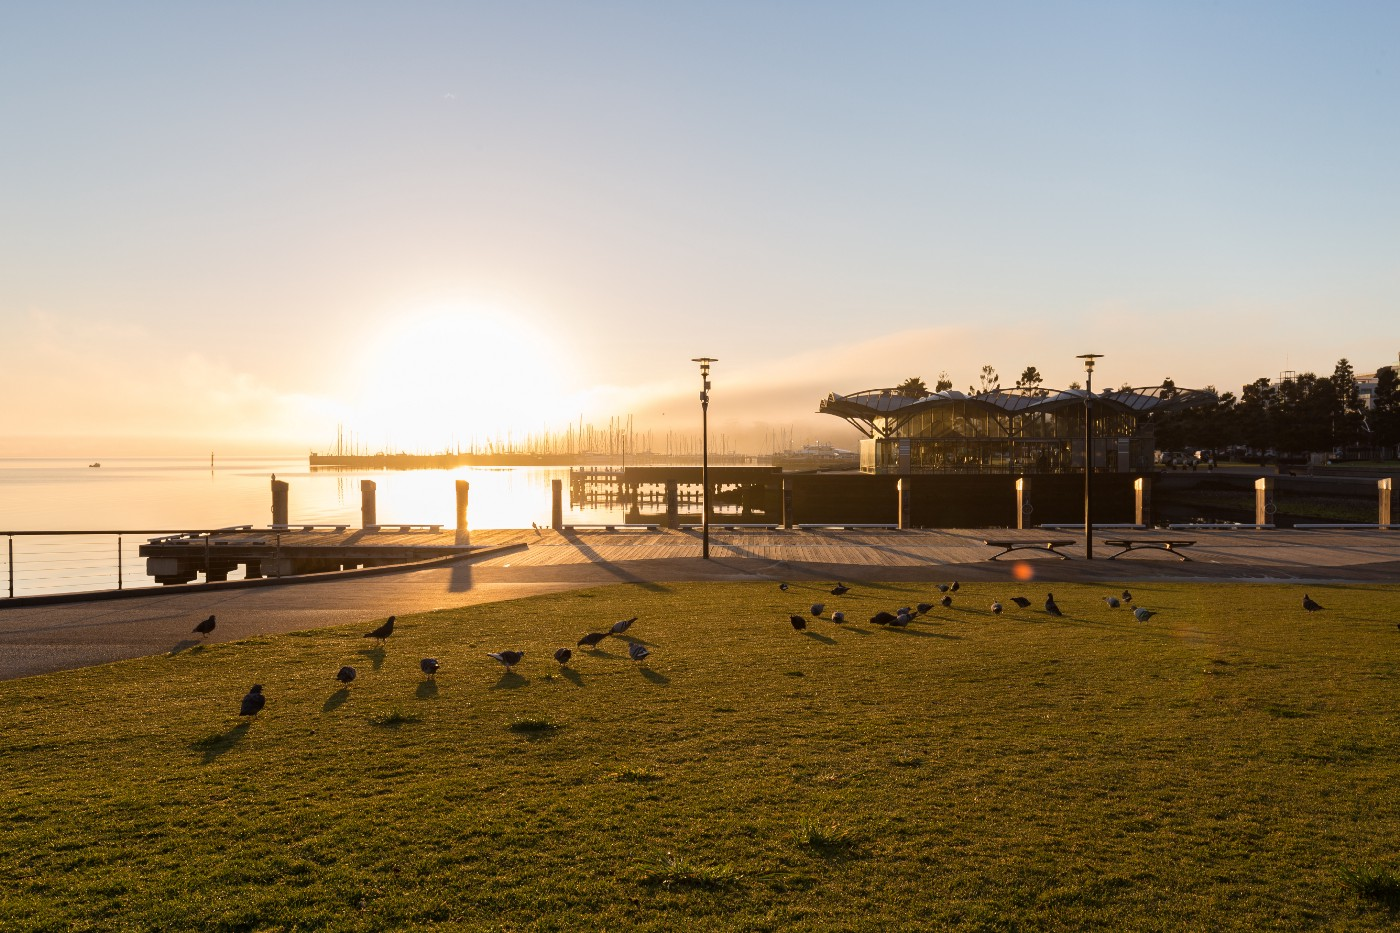 a grassy field with birds on the edge of a body of water with a pier jutting into the water. It is sunset or sunrise